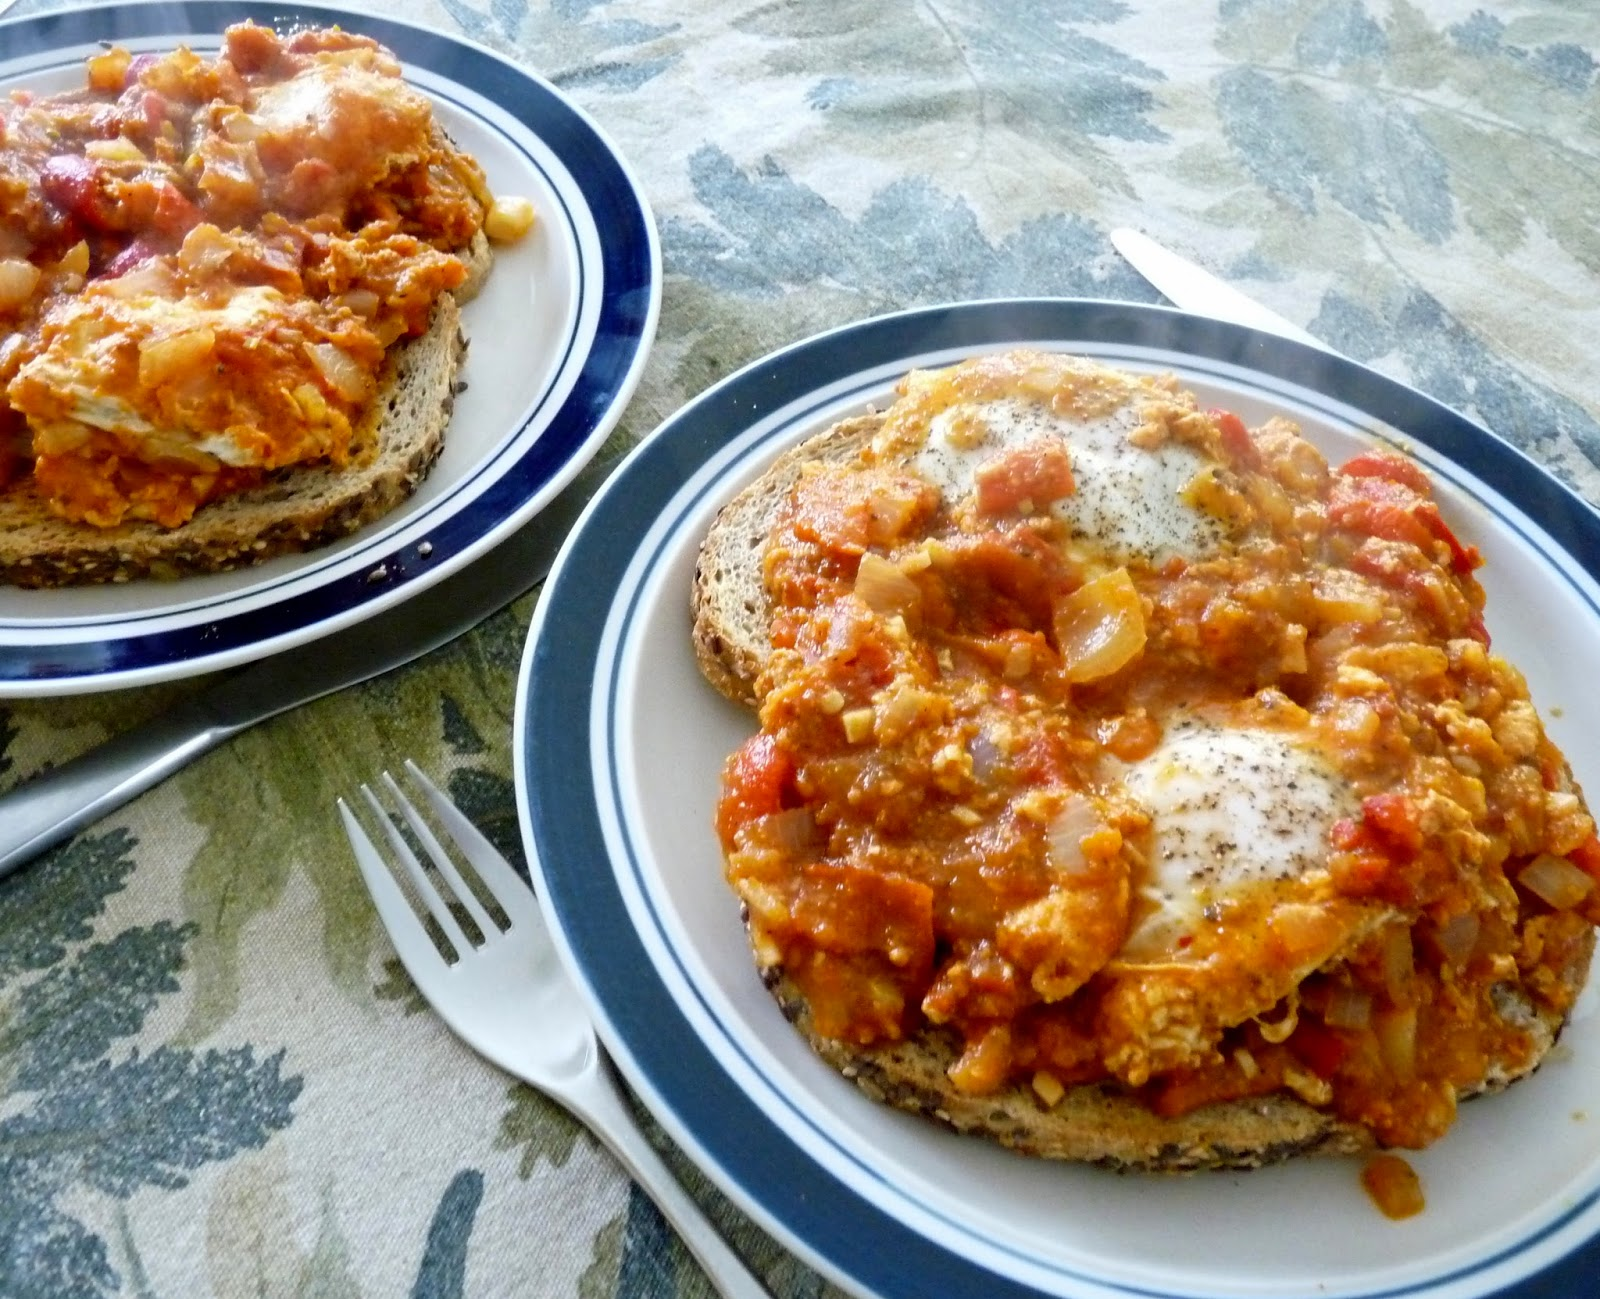 Eggs in Purgatory, also known as Uova in Purgatorio, Huevos en Purgatorio, and Shakshouka